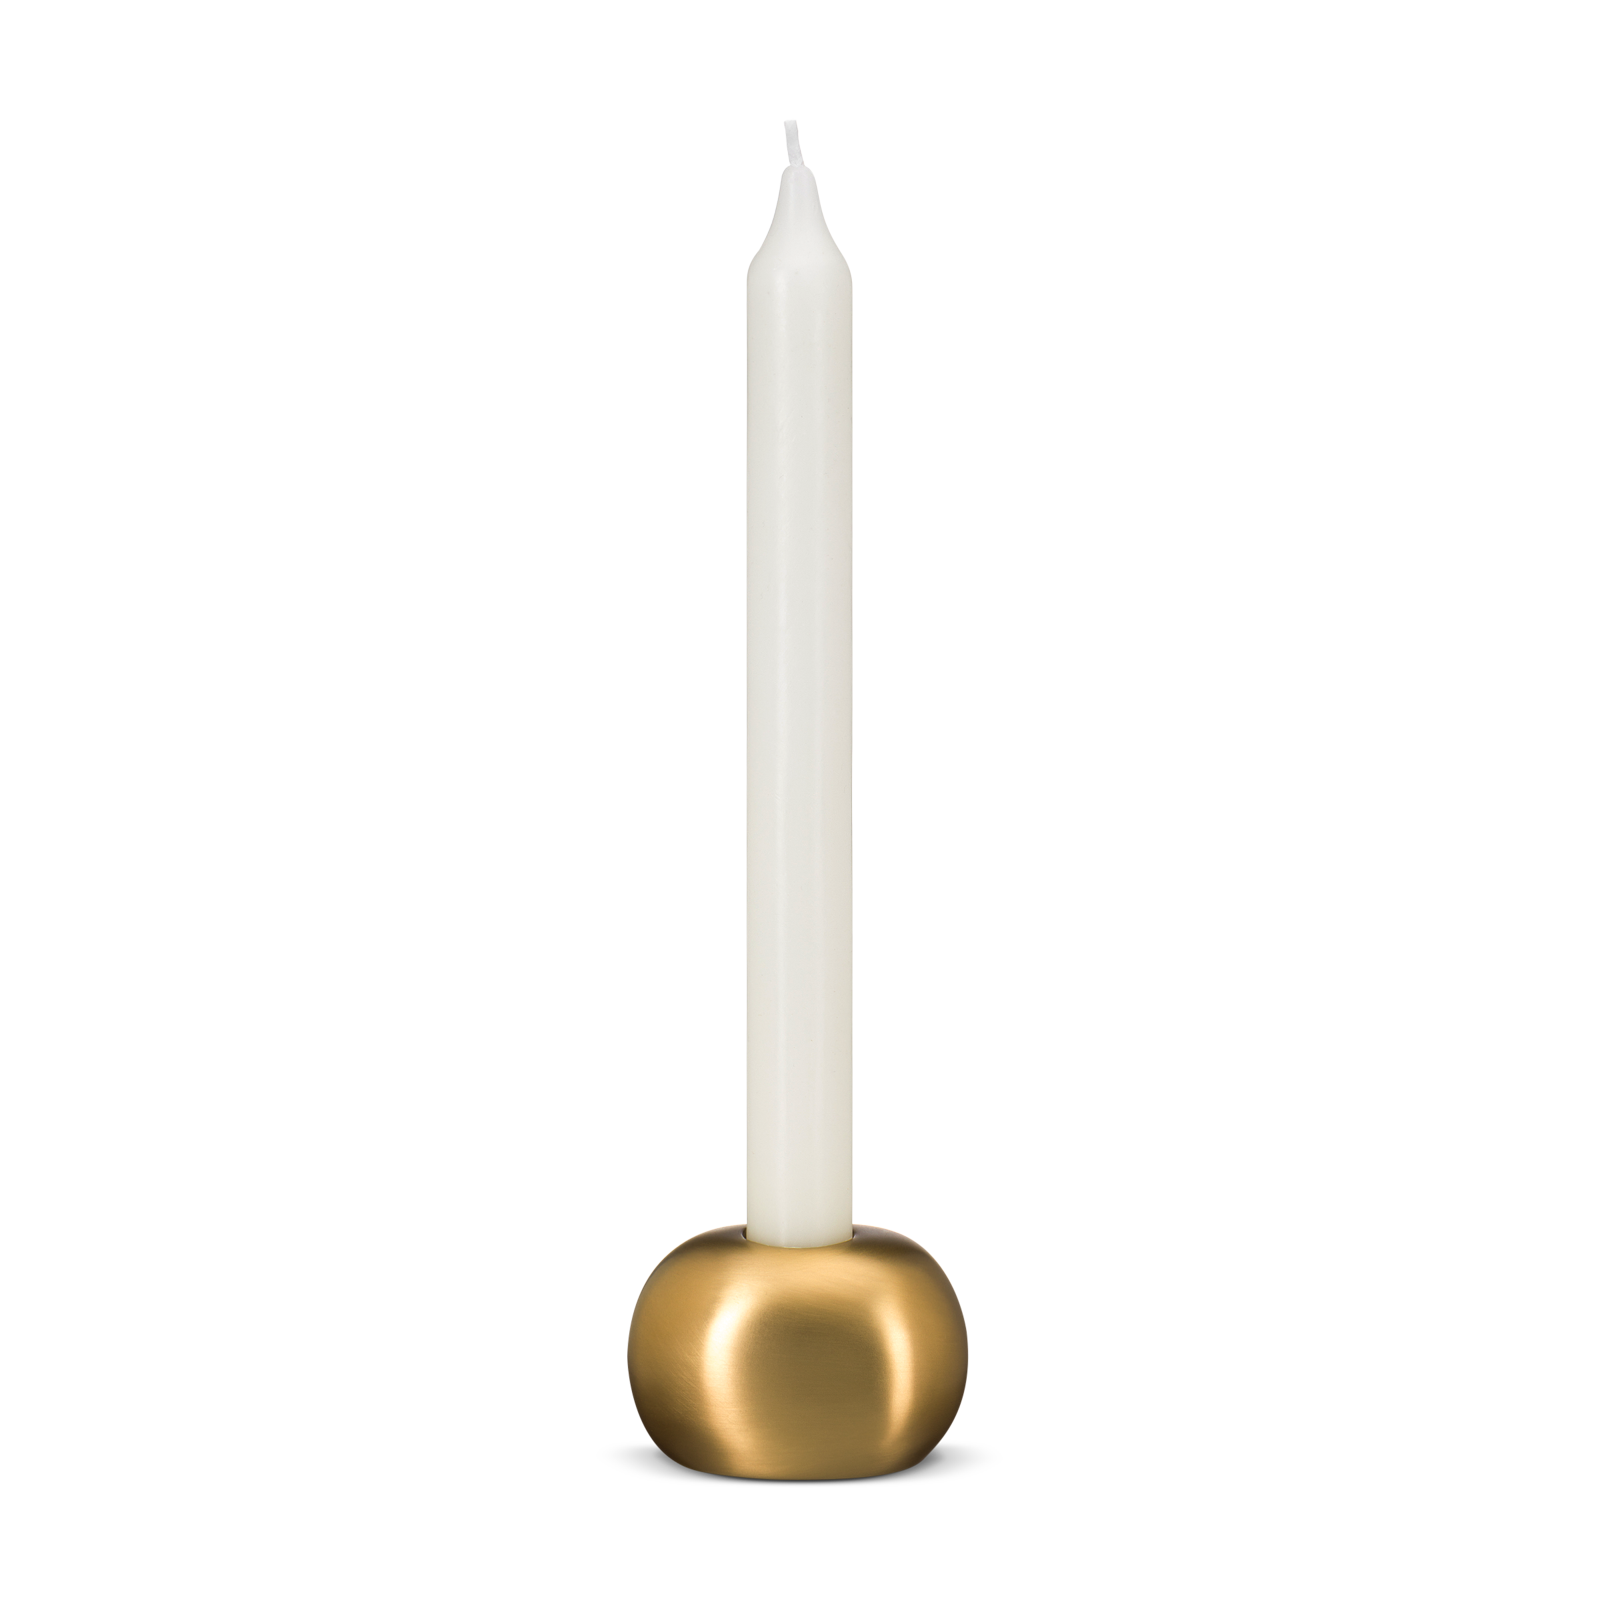 gold candlestick product photography